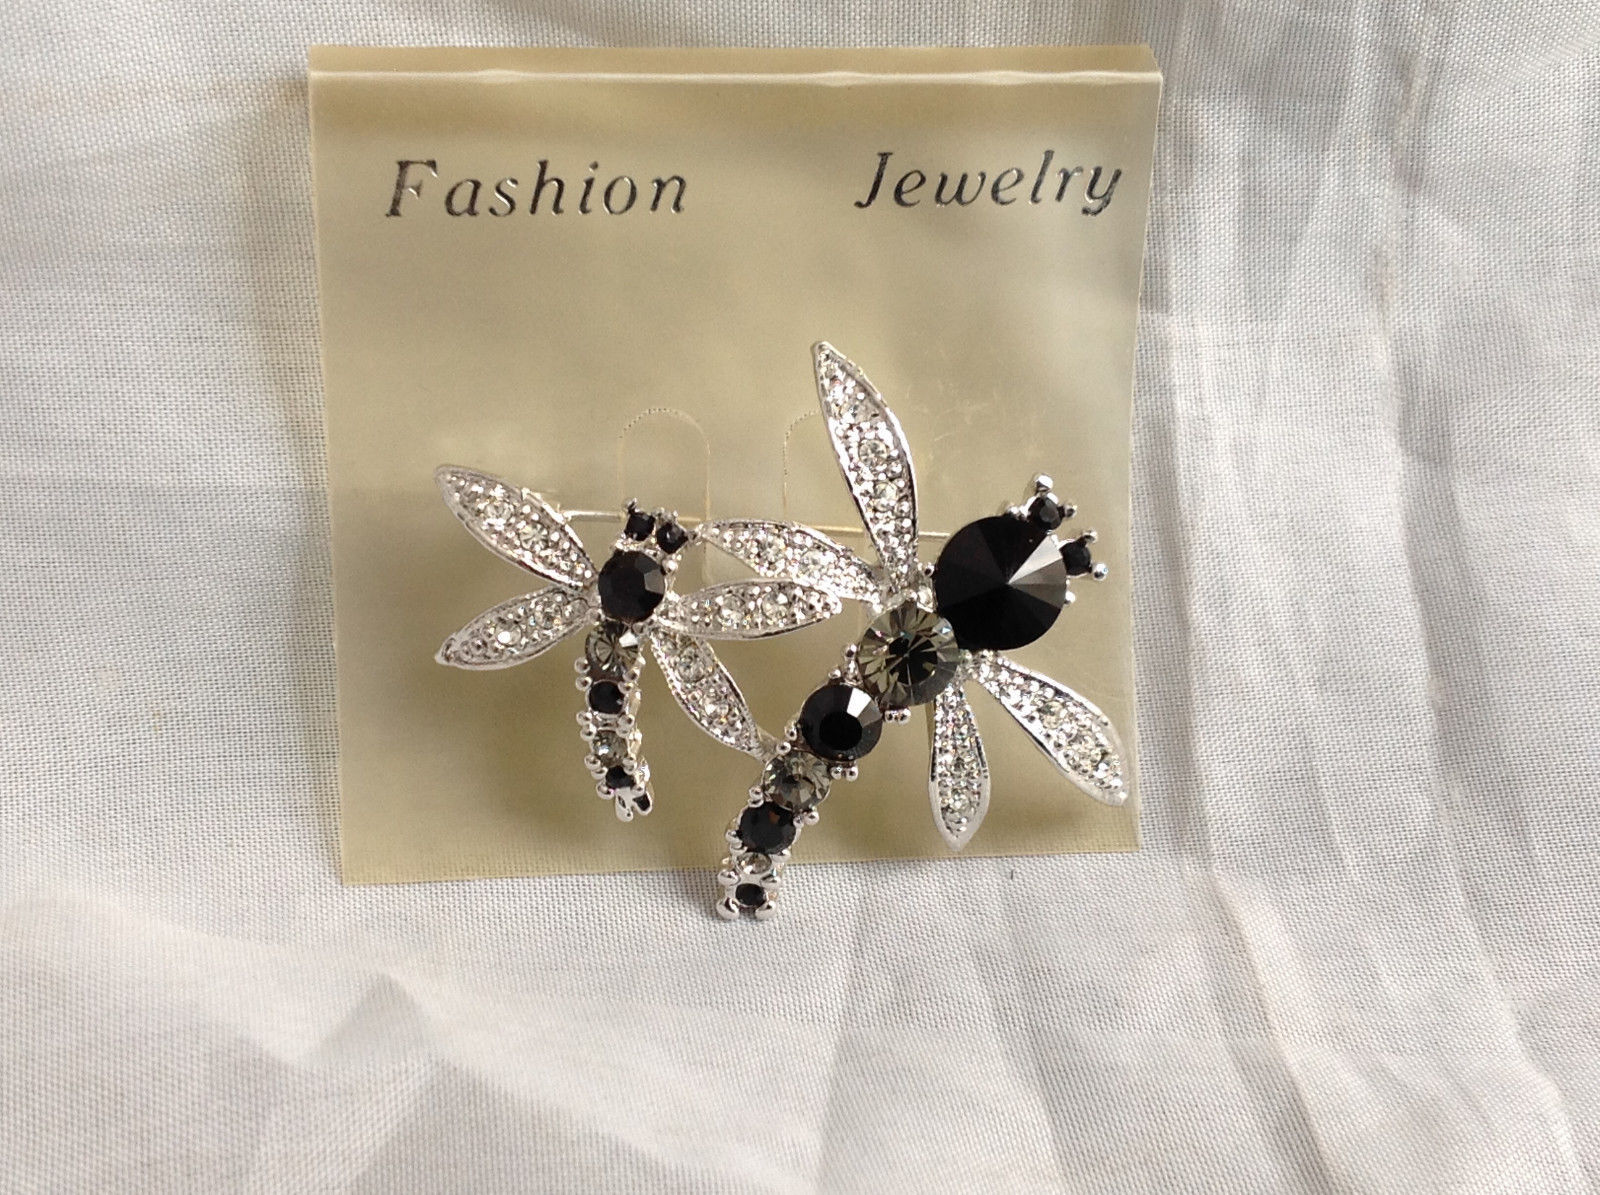 Silver Tone Double Dragonfly Crystal Brooch/Pin Black Clear Stones Pin Closure